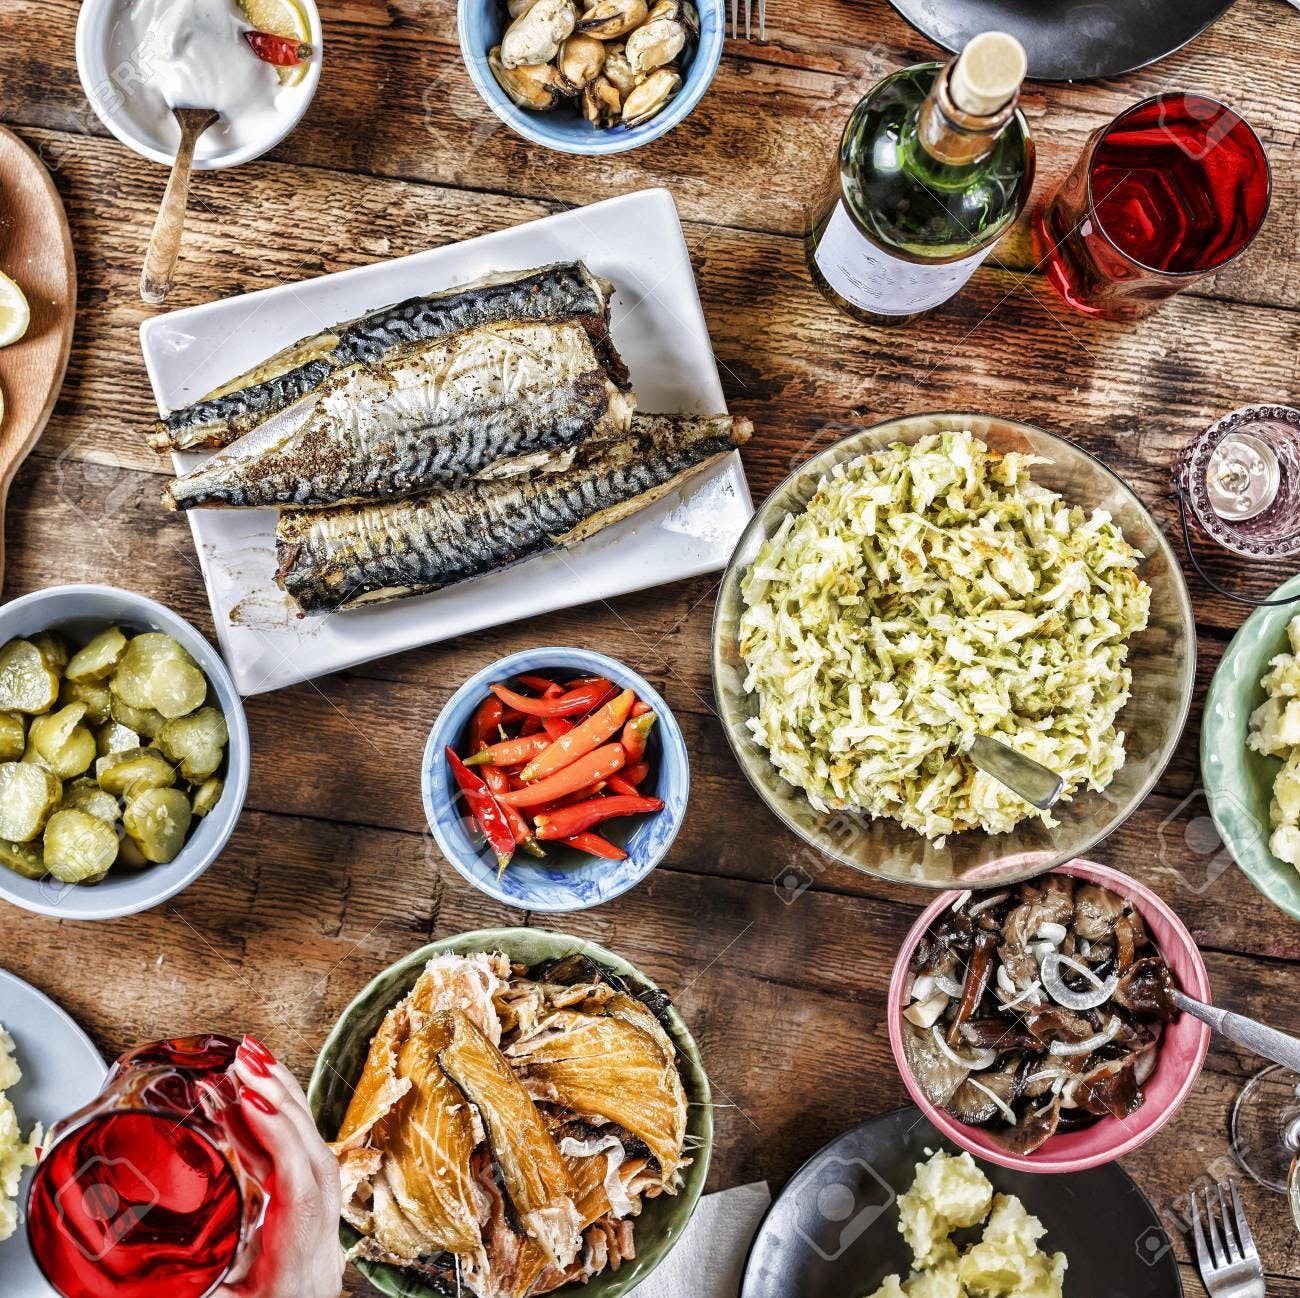 many different types of food on a table